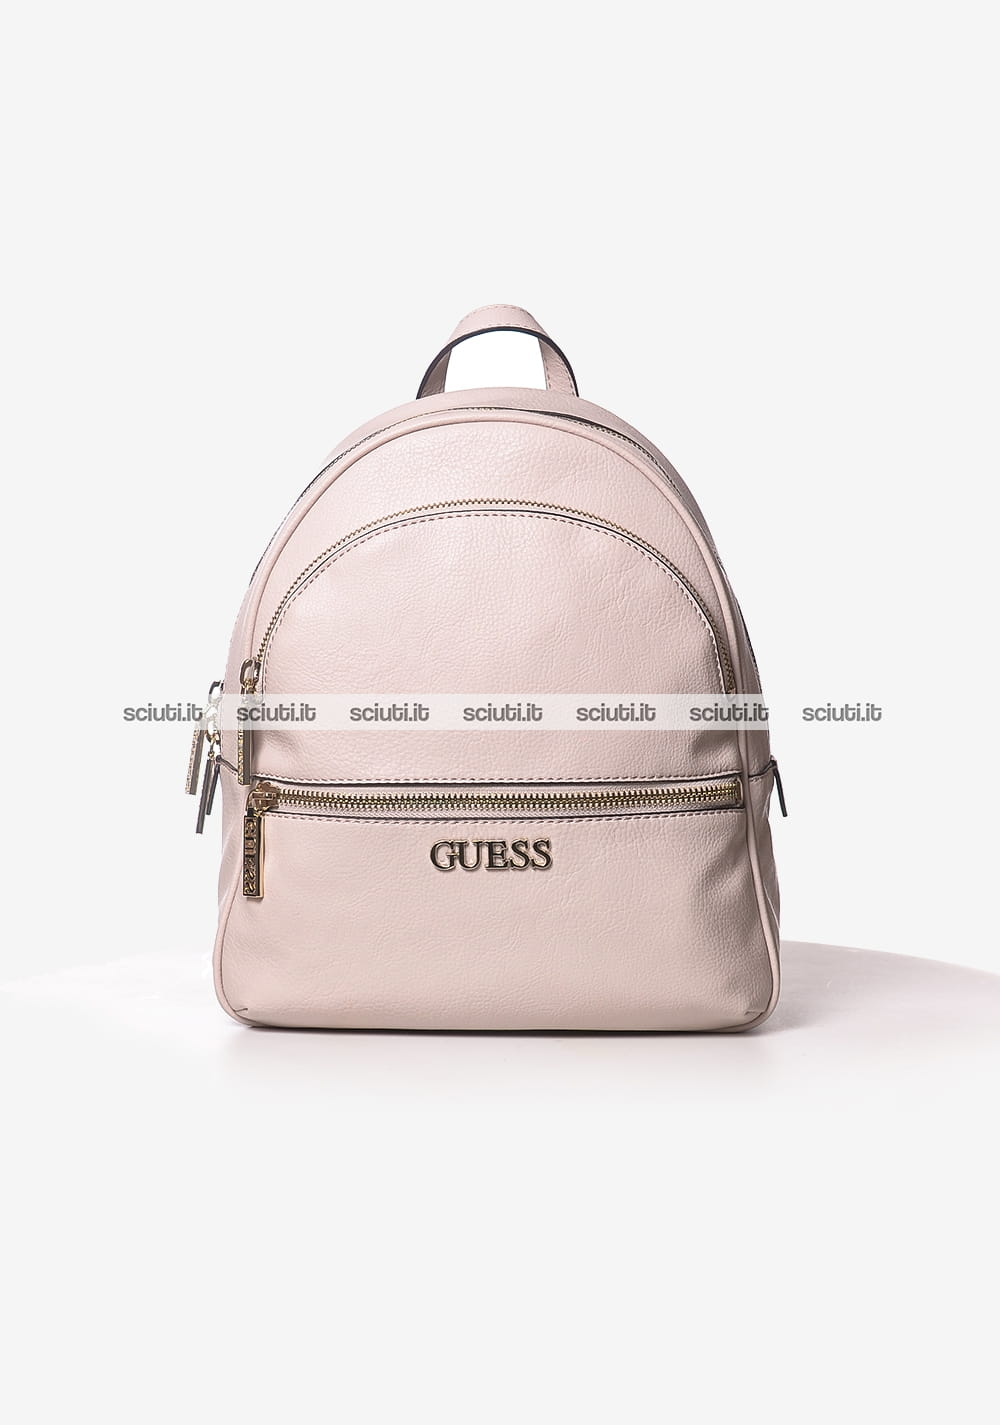 Zaino Guess donna bianco panna Manhattan